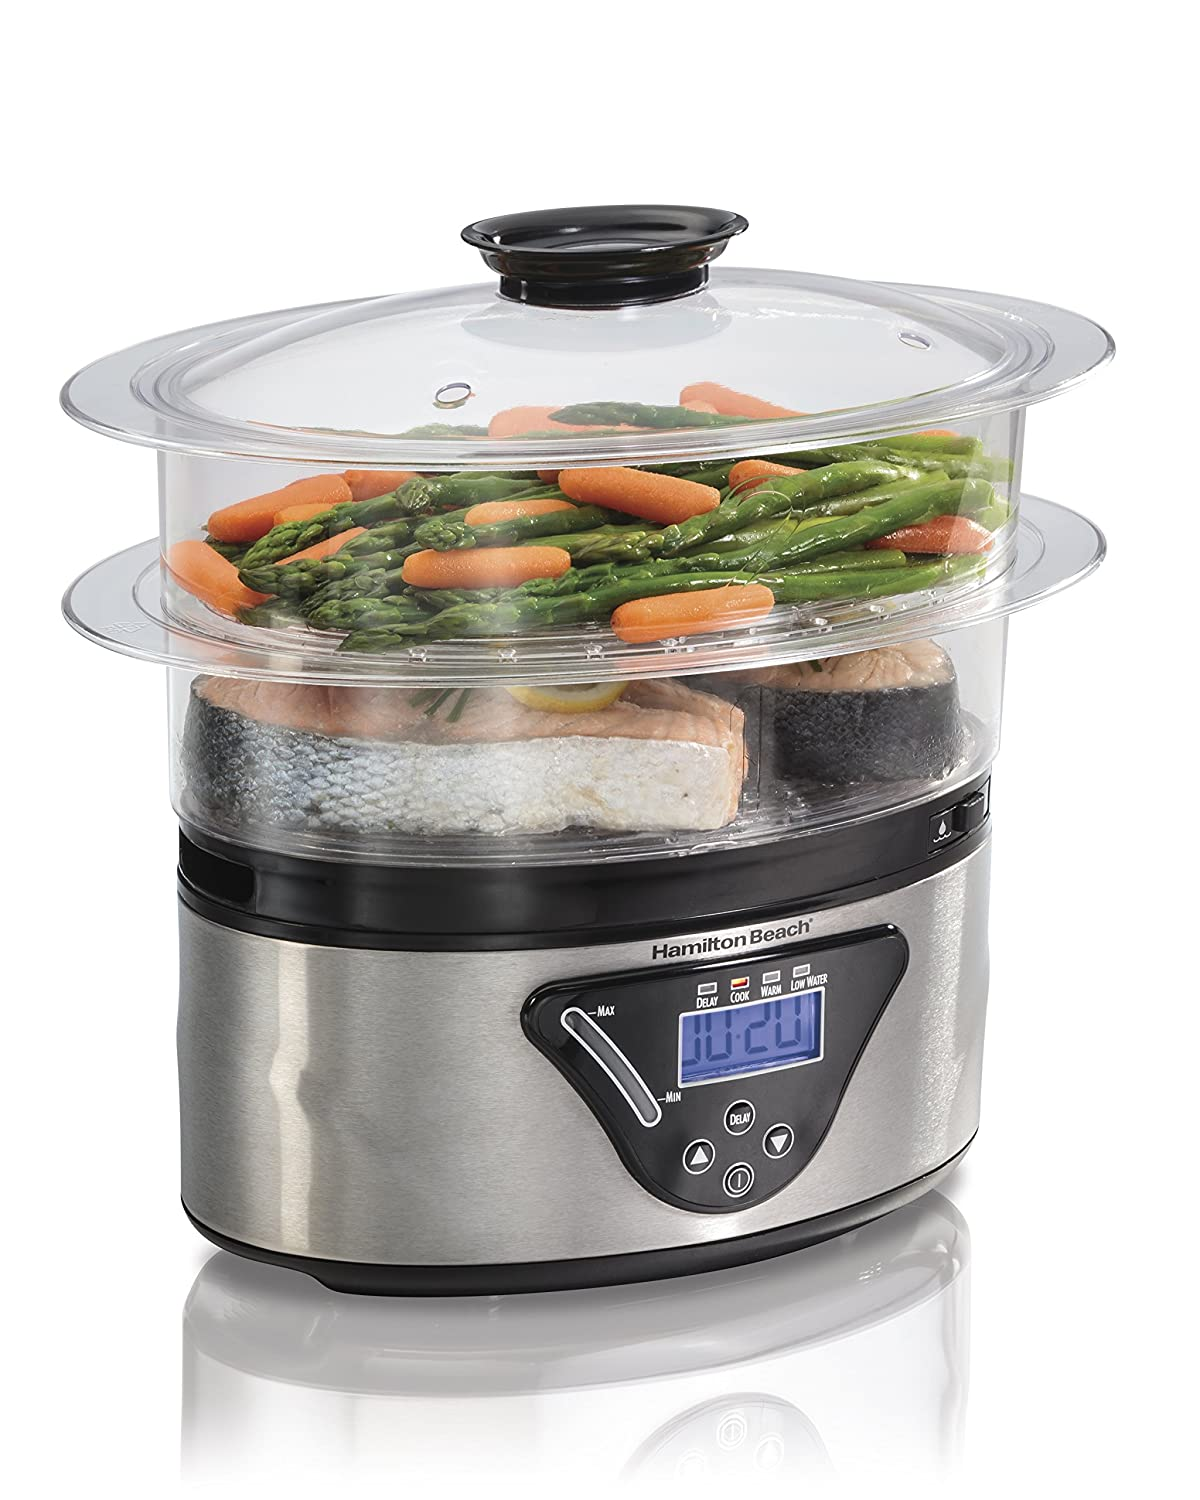 Hamilton Beach Digital Food Steamer - 5.5 Quart (37530A